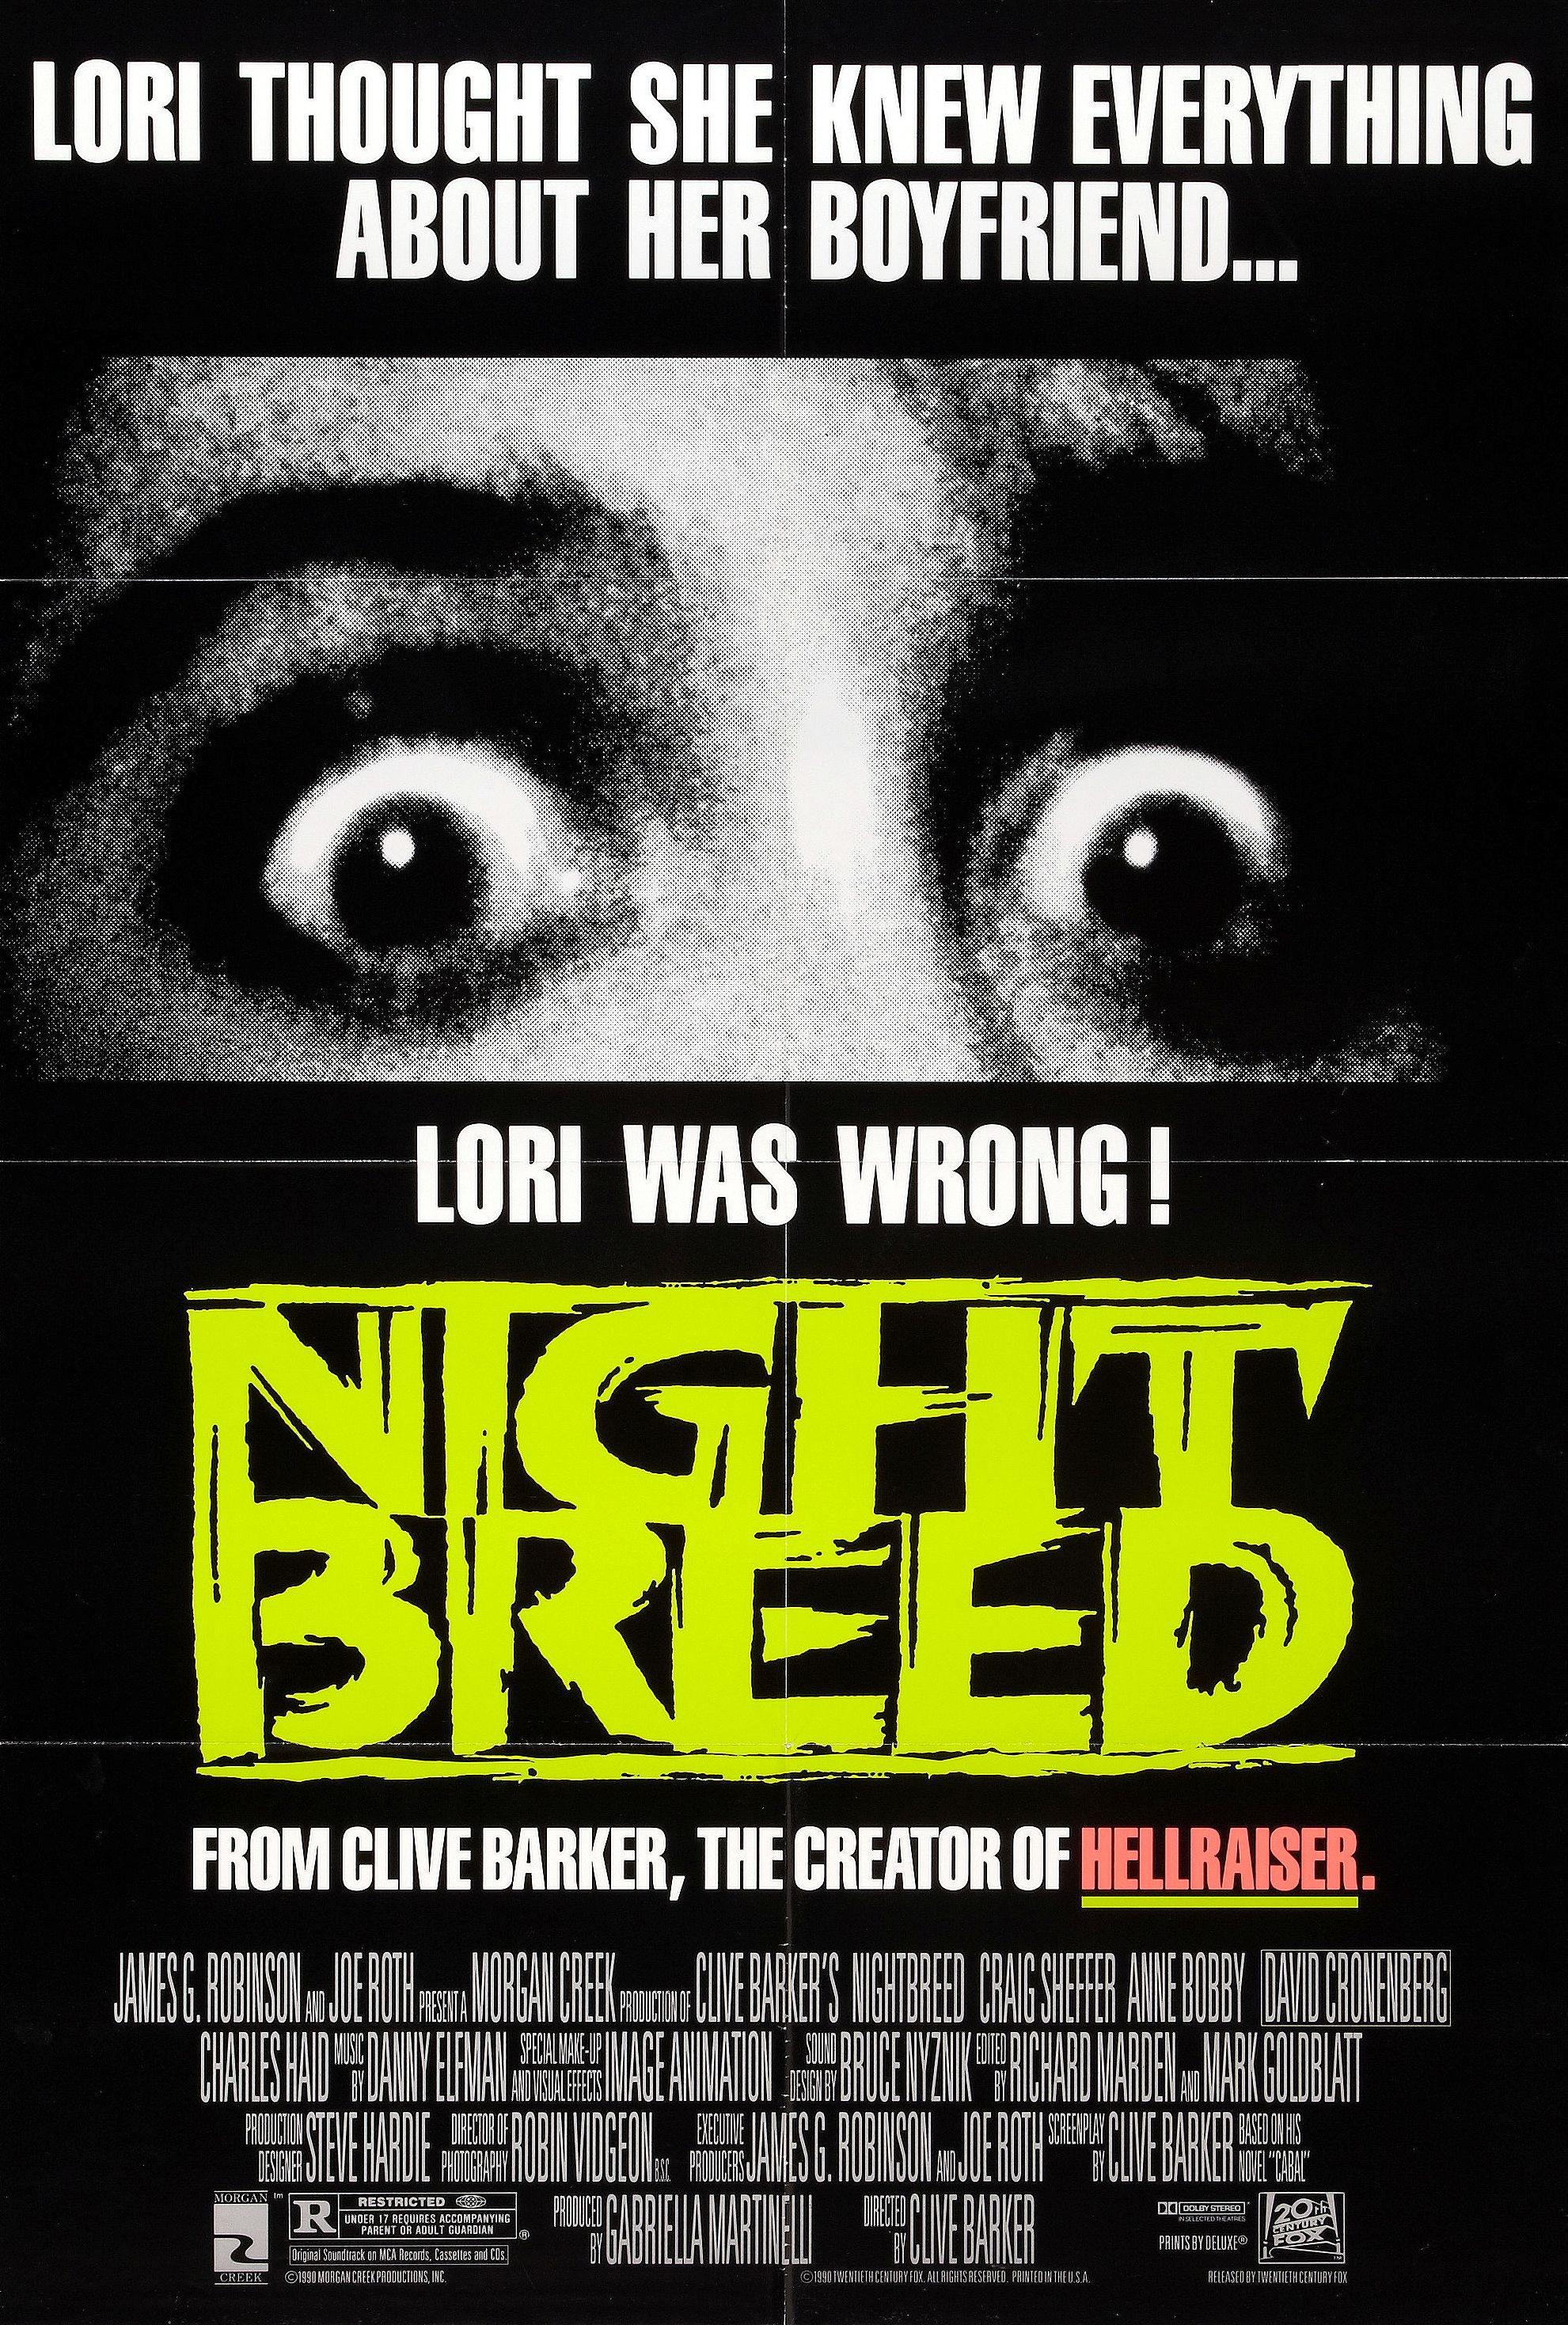 Nightbreed: Director's Cut (1990)